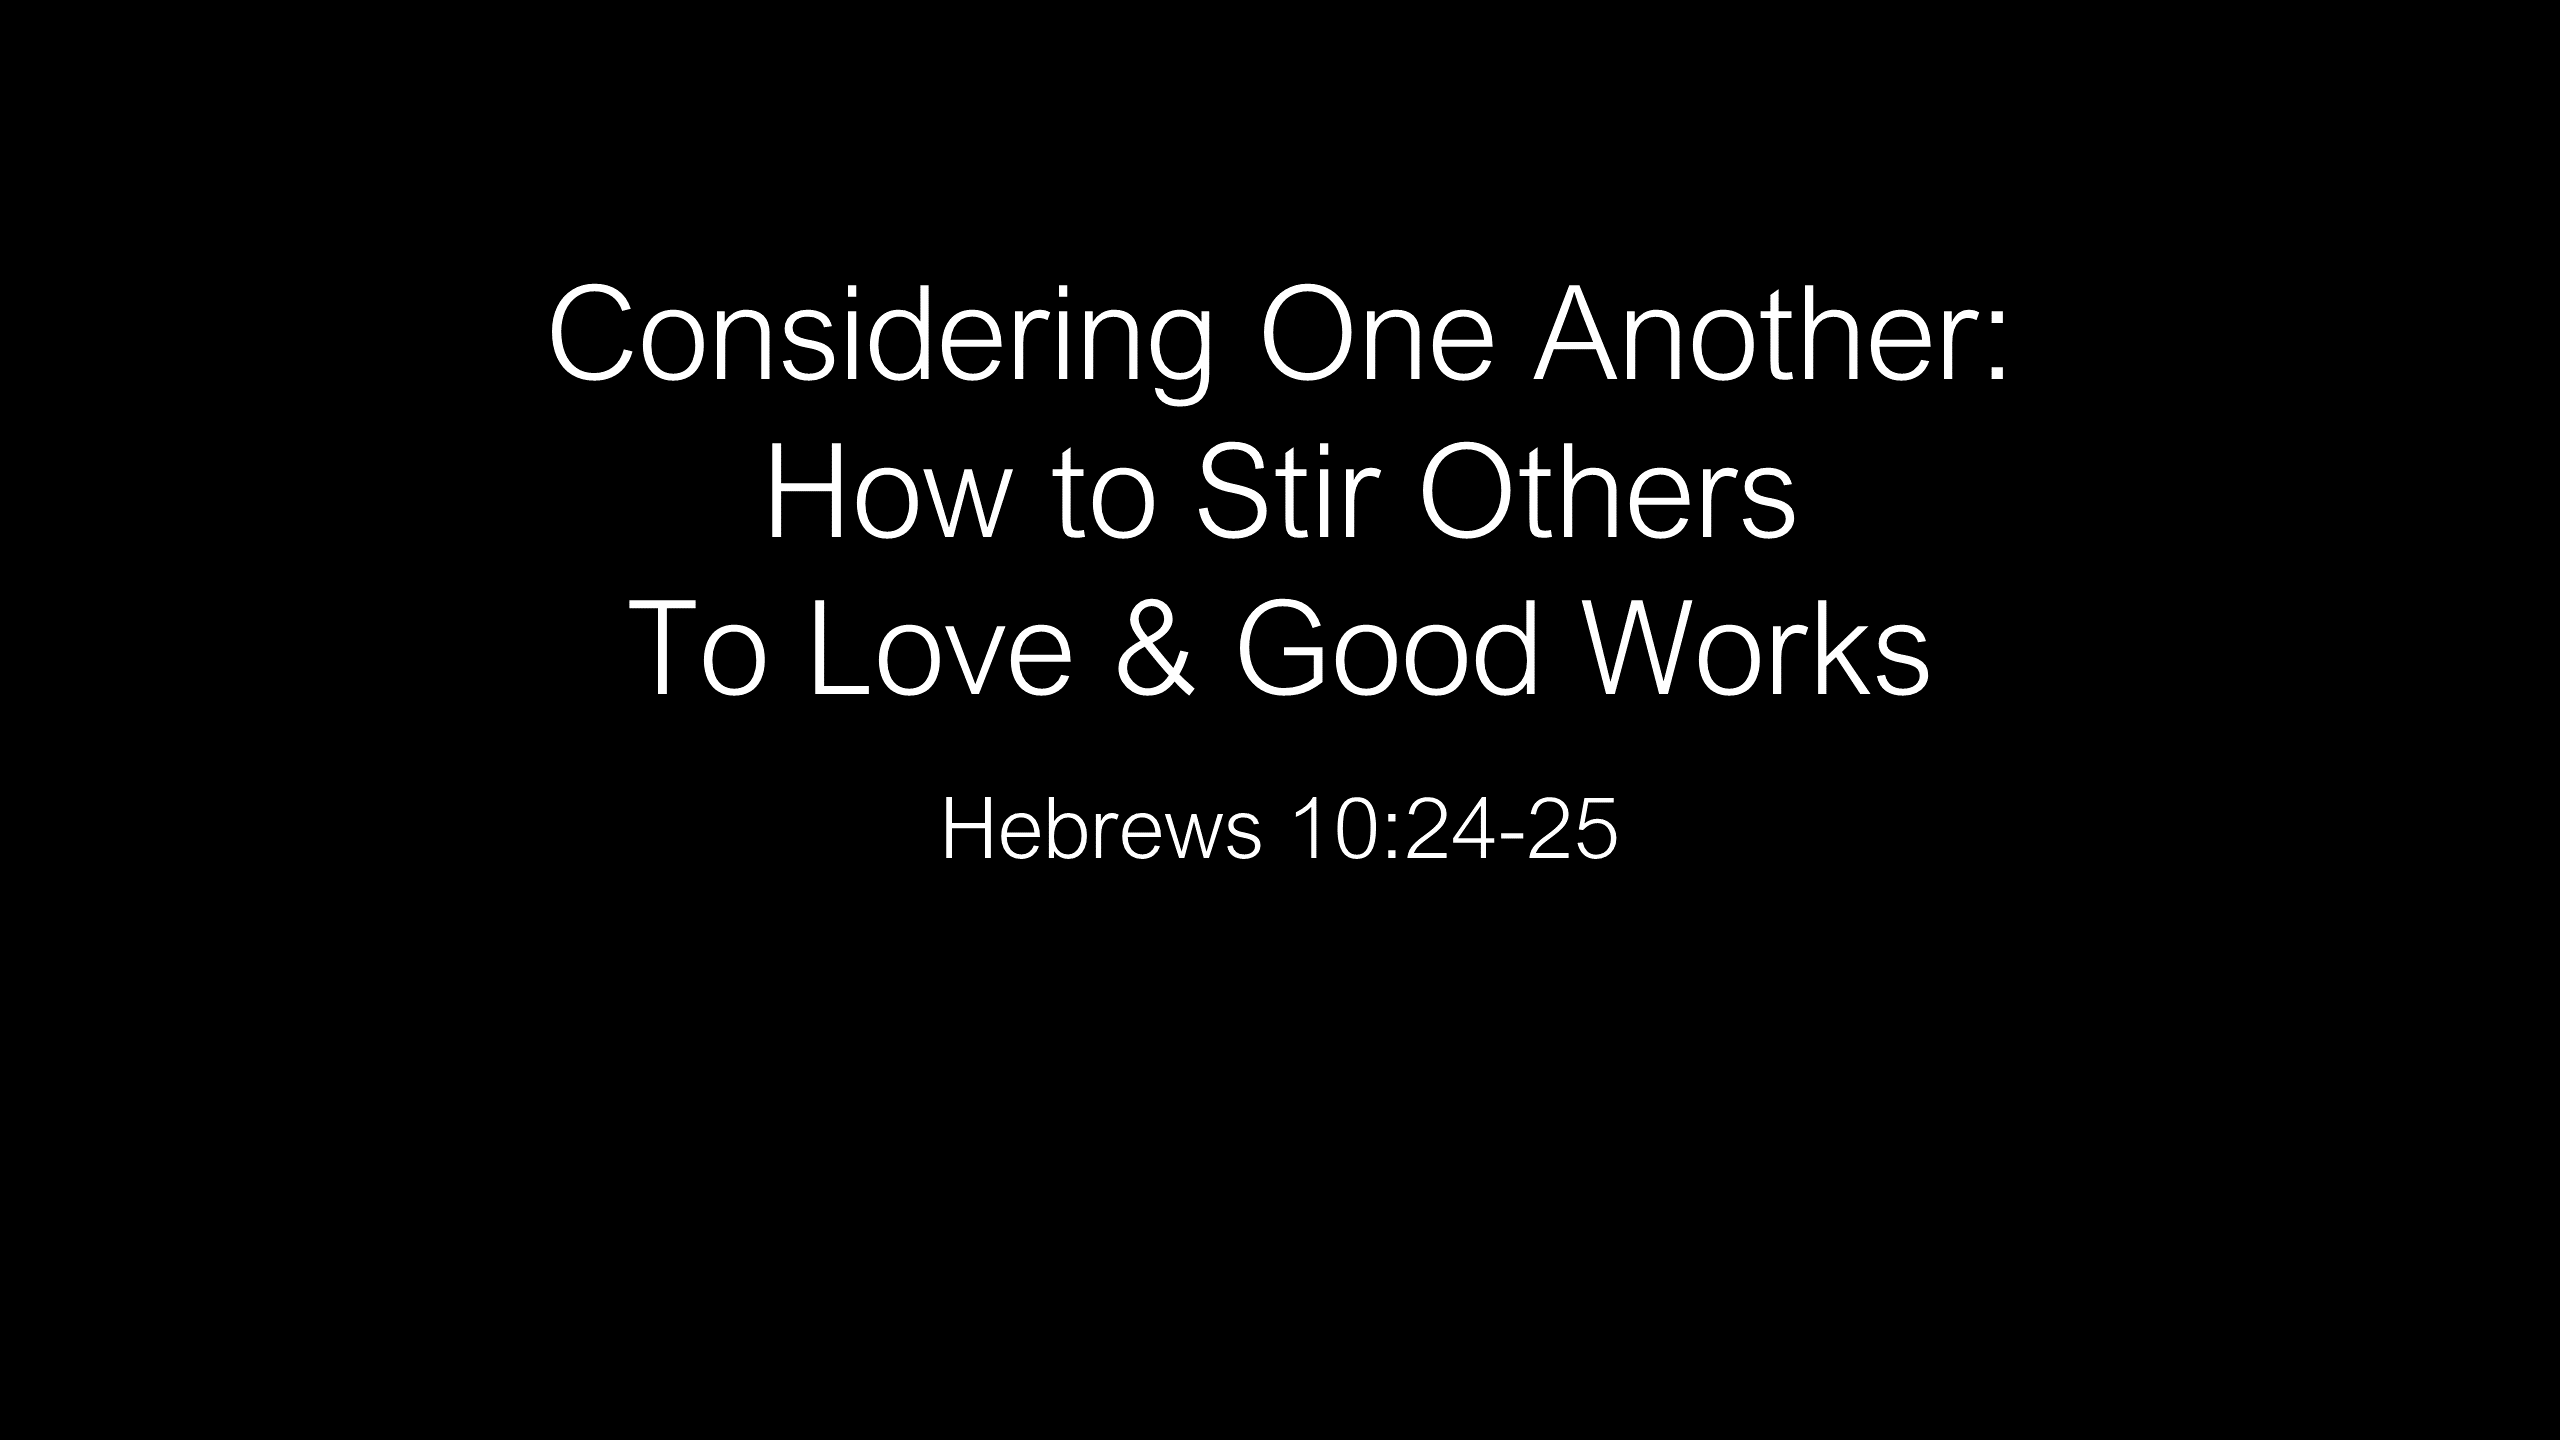 WCC-07 - Considering One Another - How to Stir Others To Love & Good Works (1)